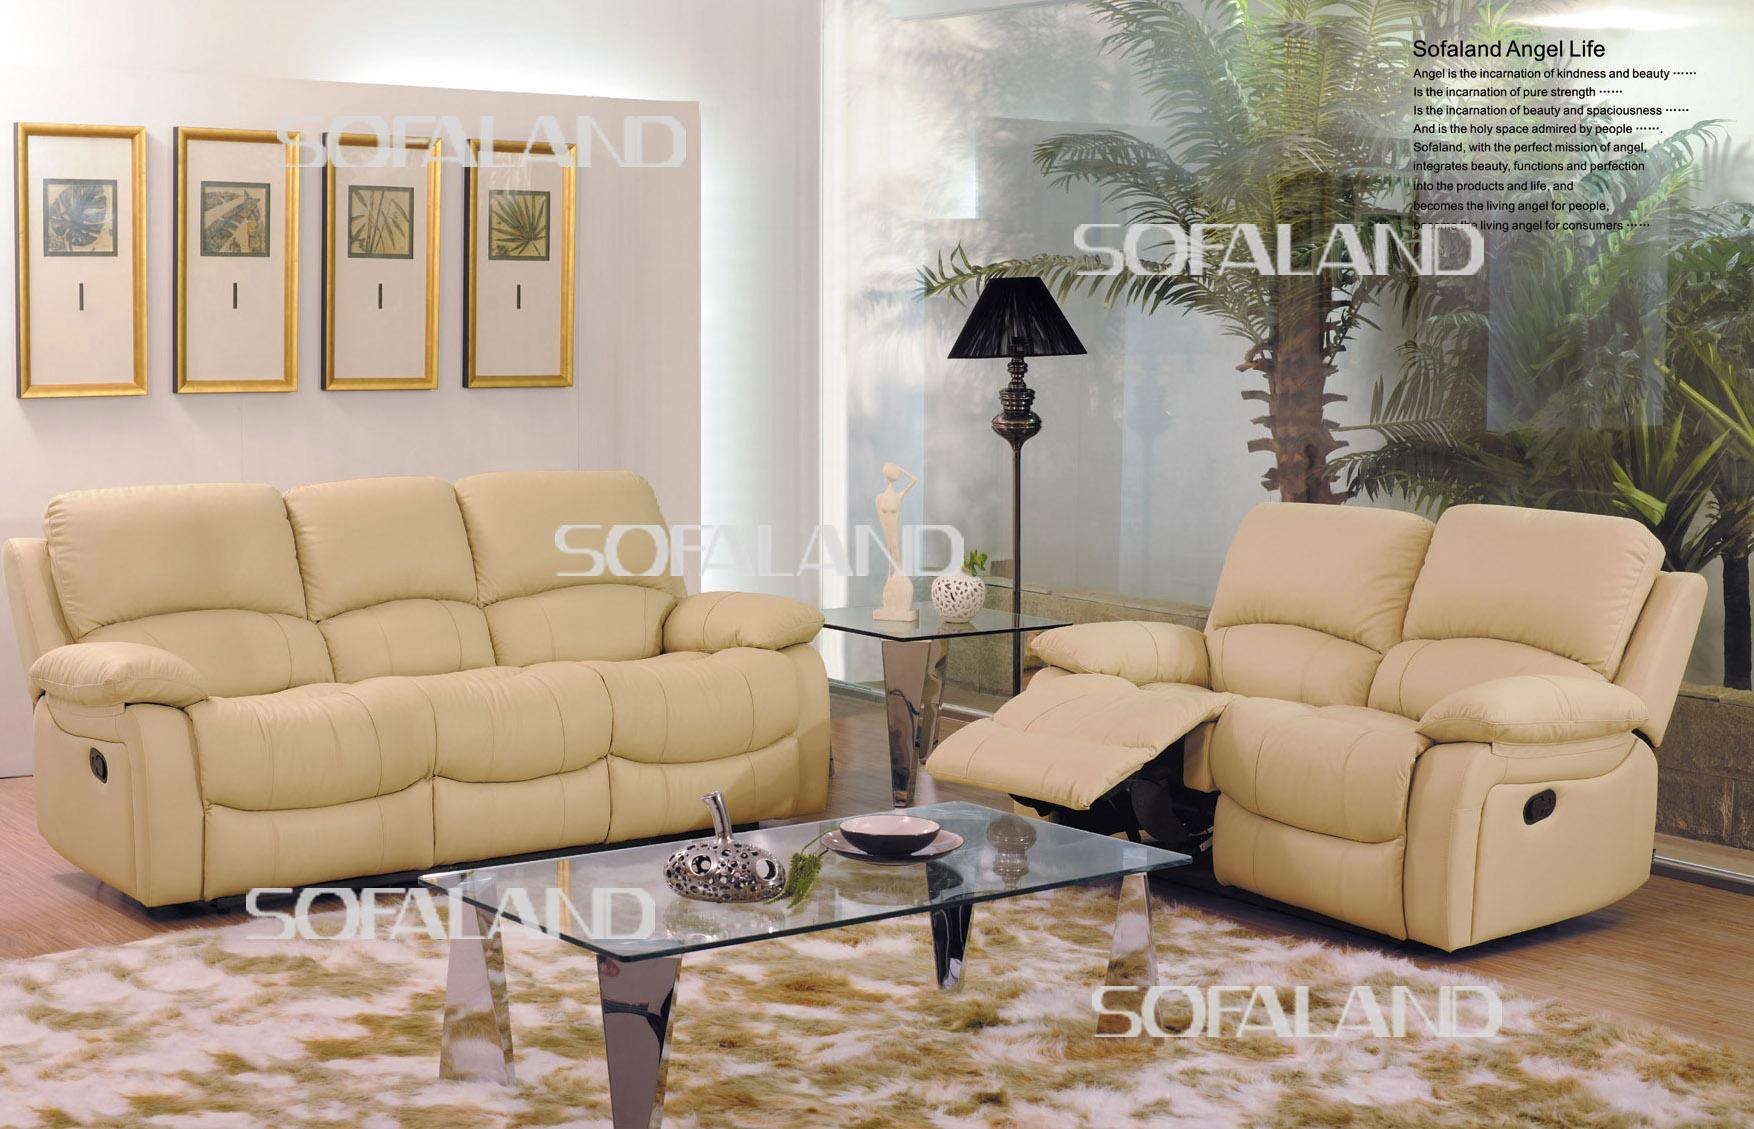 New] 28 light colored leather sofa